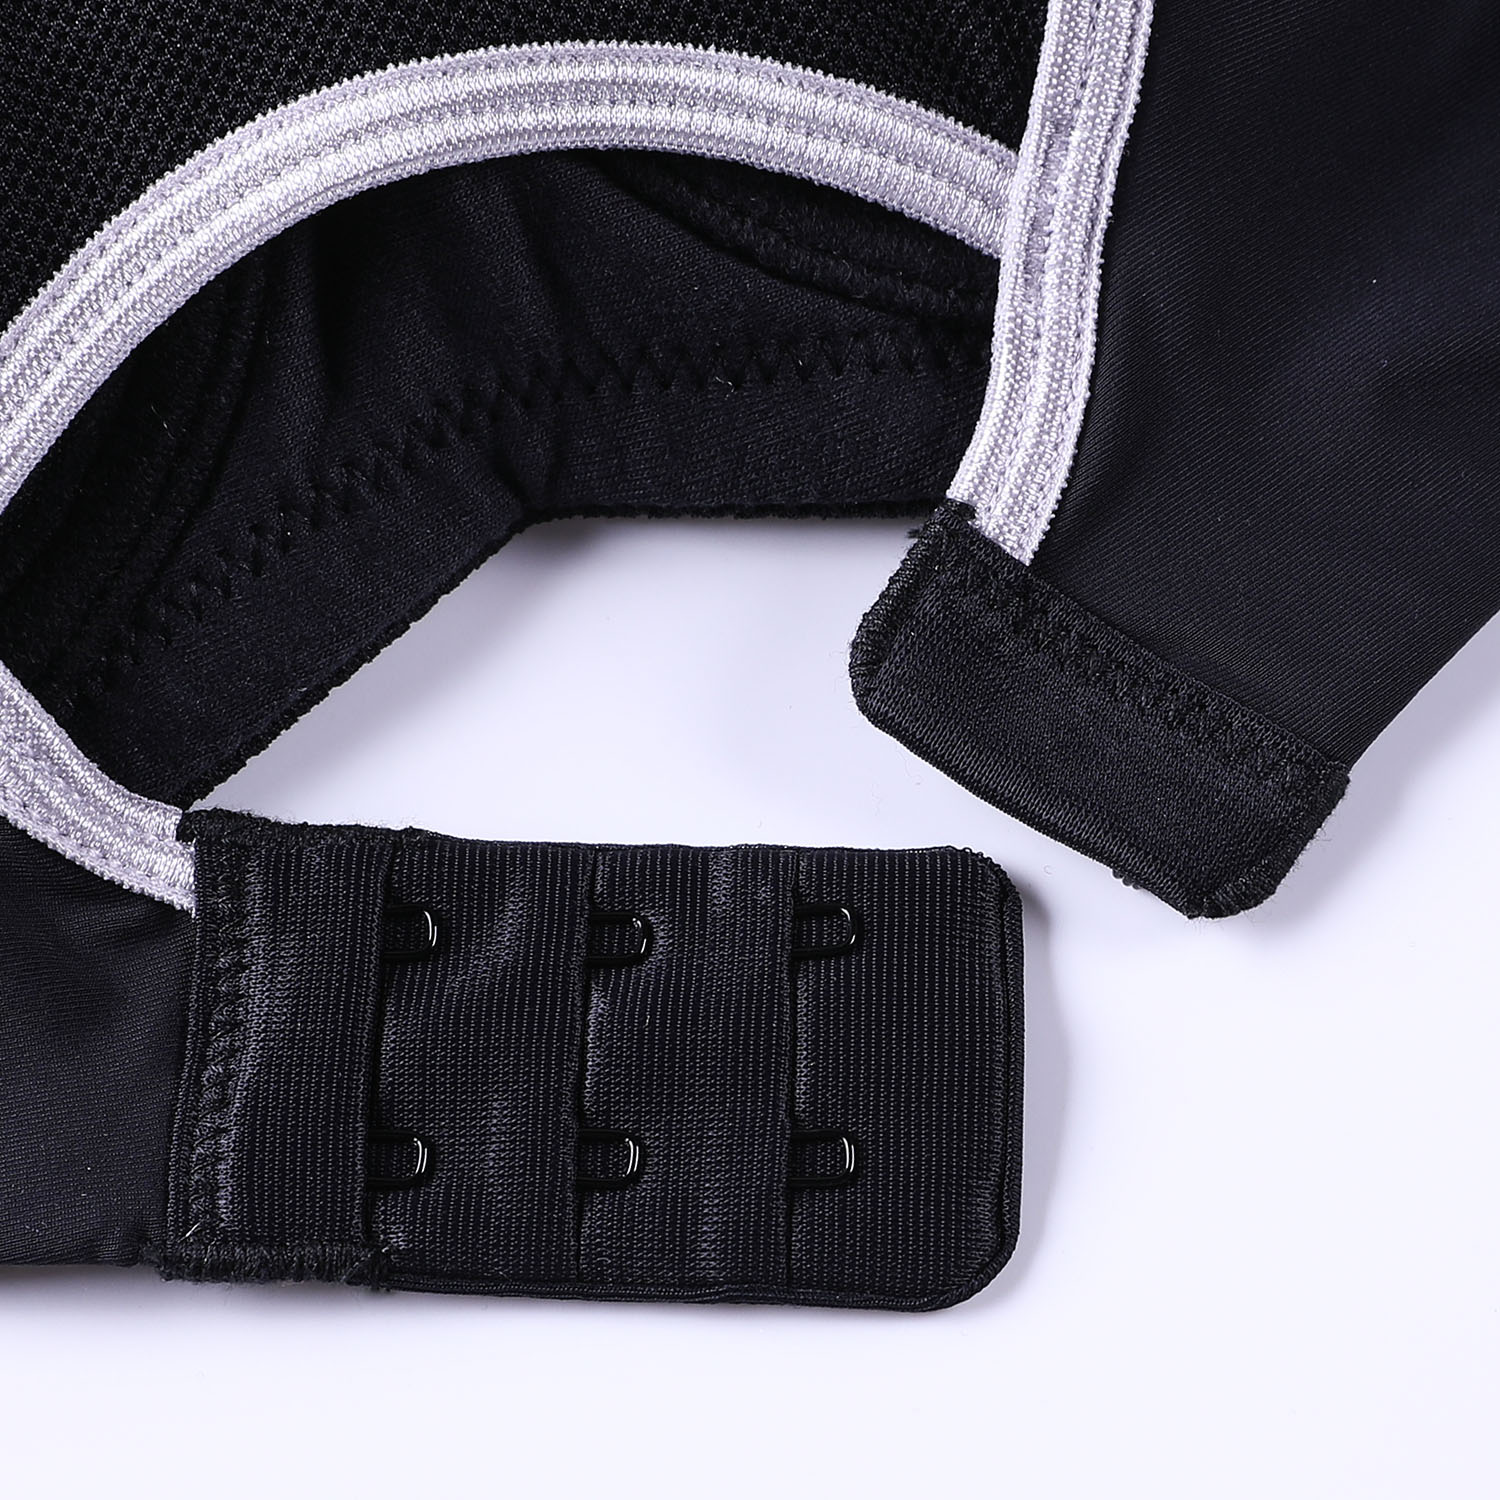 SYROKAN Women's Full Support Racerback Underwire Lightly Padded Sports Bra